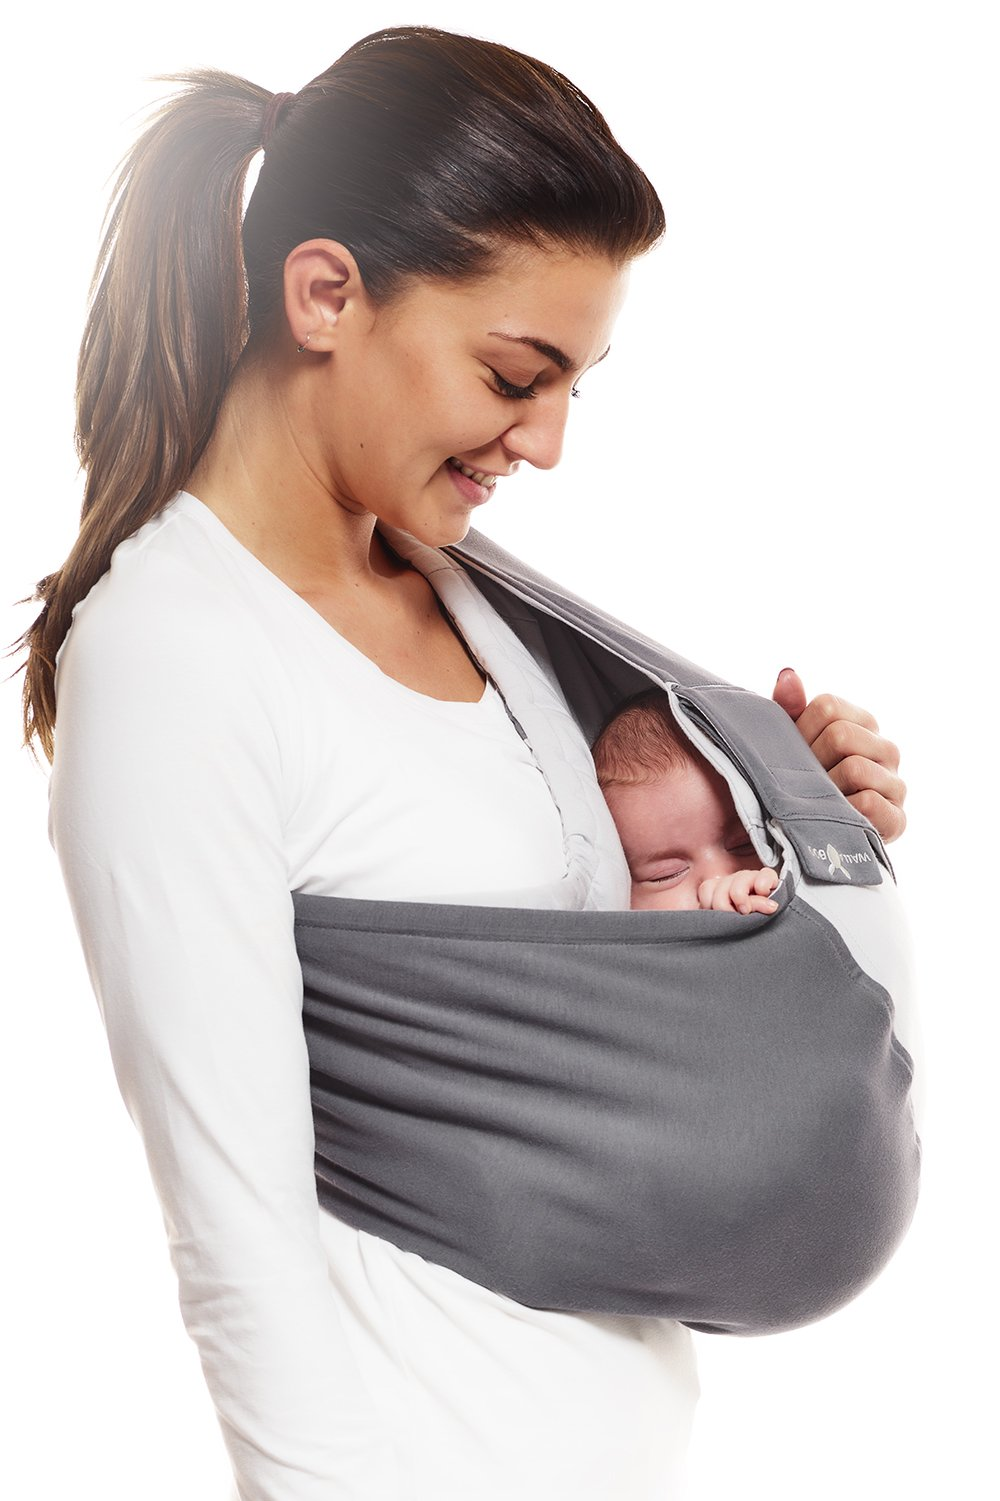 Wallaboo Wrap Sling Carrier Connection, Easy Adjustable, Ergonomic, 3 Carrying Positions, Newborn 8lbs to 33 lbs, Soft Breathable Cotton, 3 Sitting Positions, EU Safety Tested, Color: Grey / Silver Wallaboo Ergonomically correct design with three natural positions: sleep, sit and active- one size fits all Can be used from premature baby through to 33lbs - with easy-to-use features like a full-front opening and an adjustable back Single piece of fabric, no straps, belts or buckles - partly padded to give extra comfort- no wrapping, no hardware. ready to wear 1